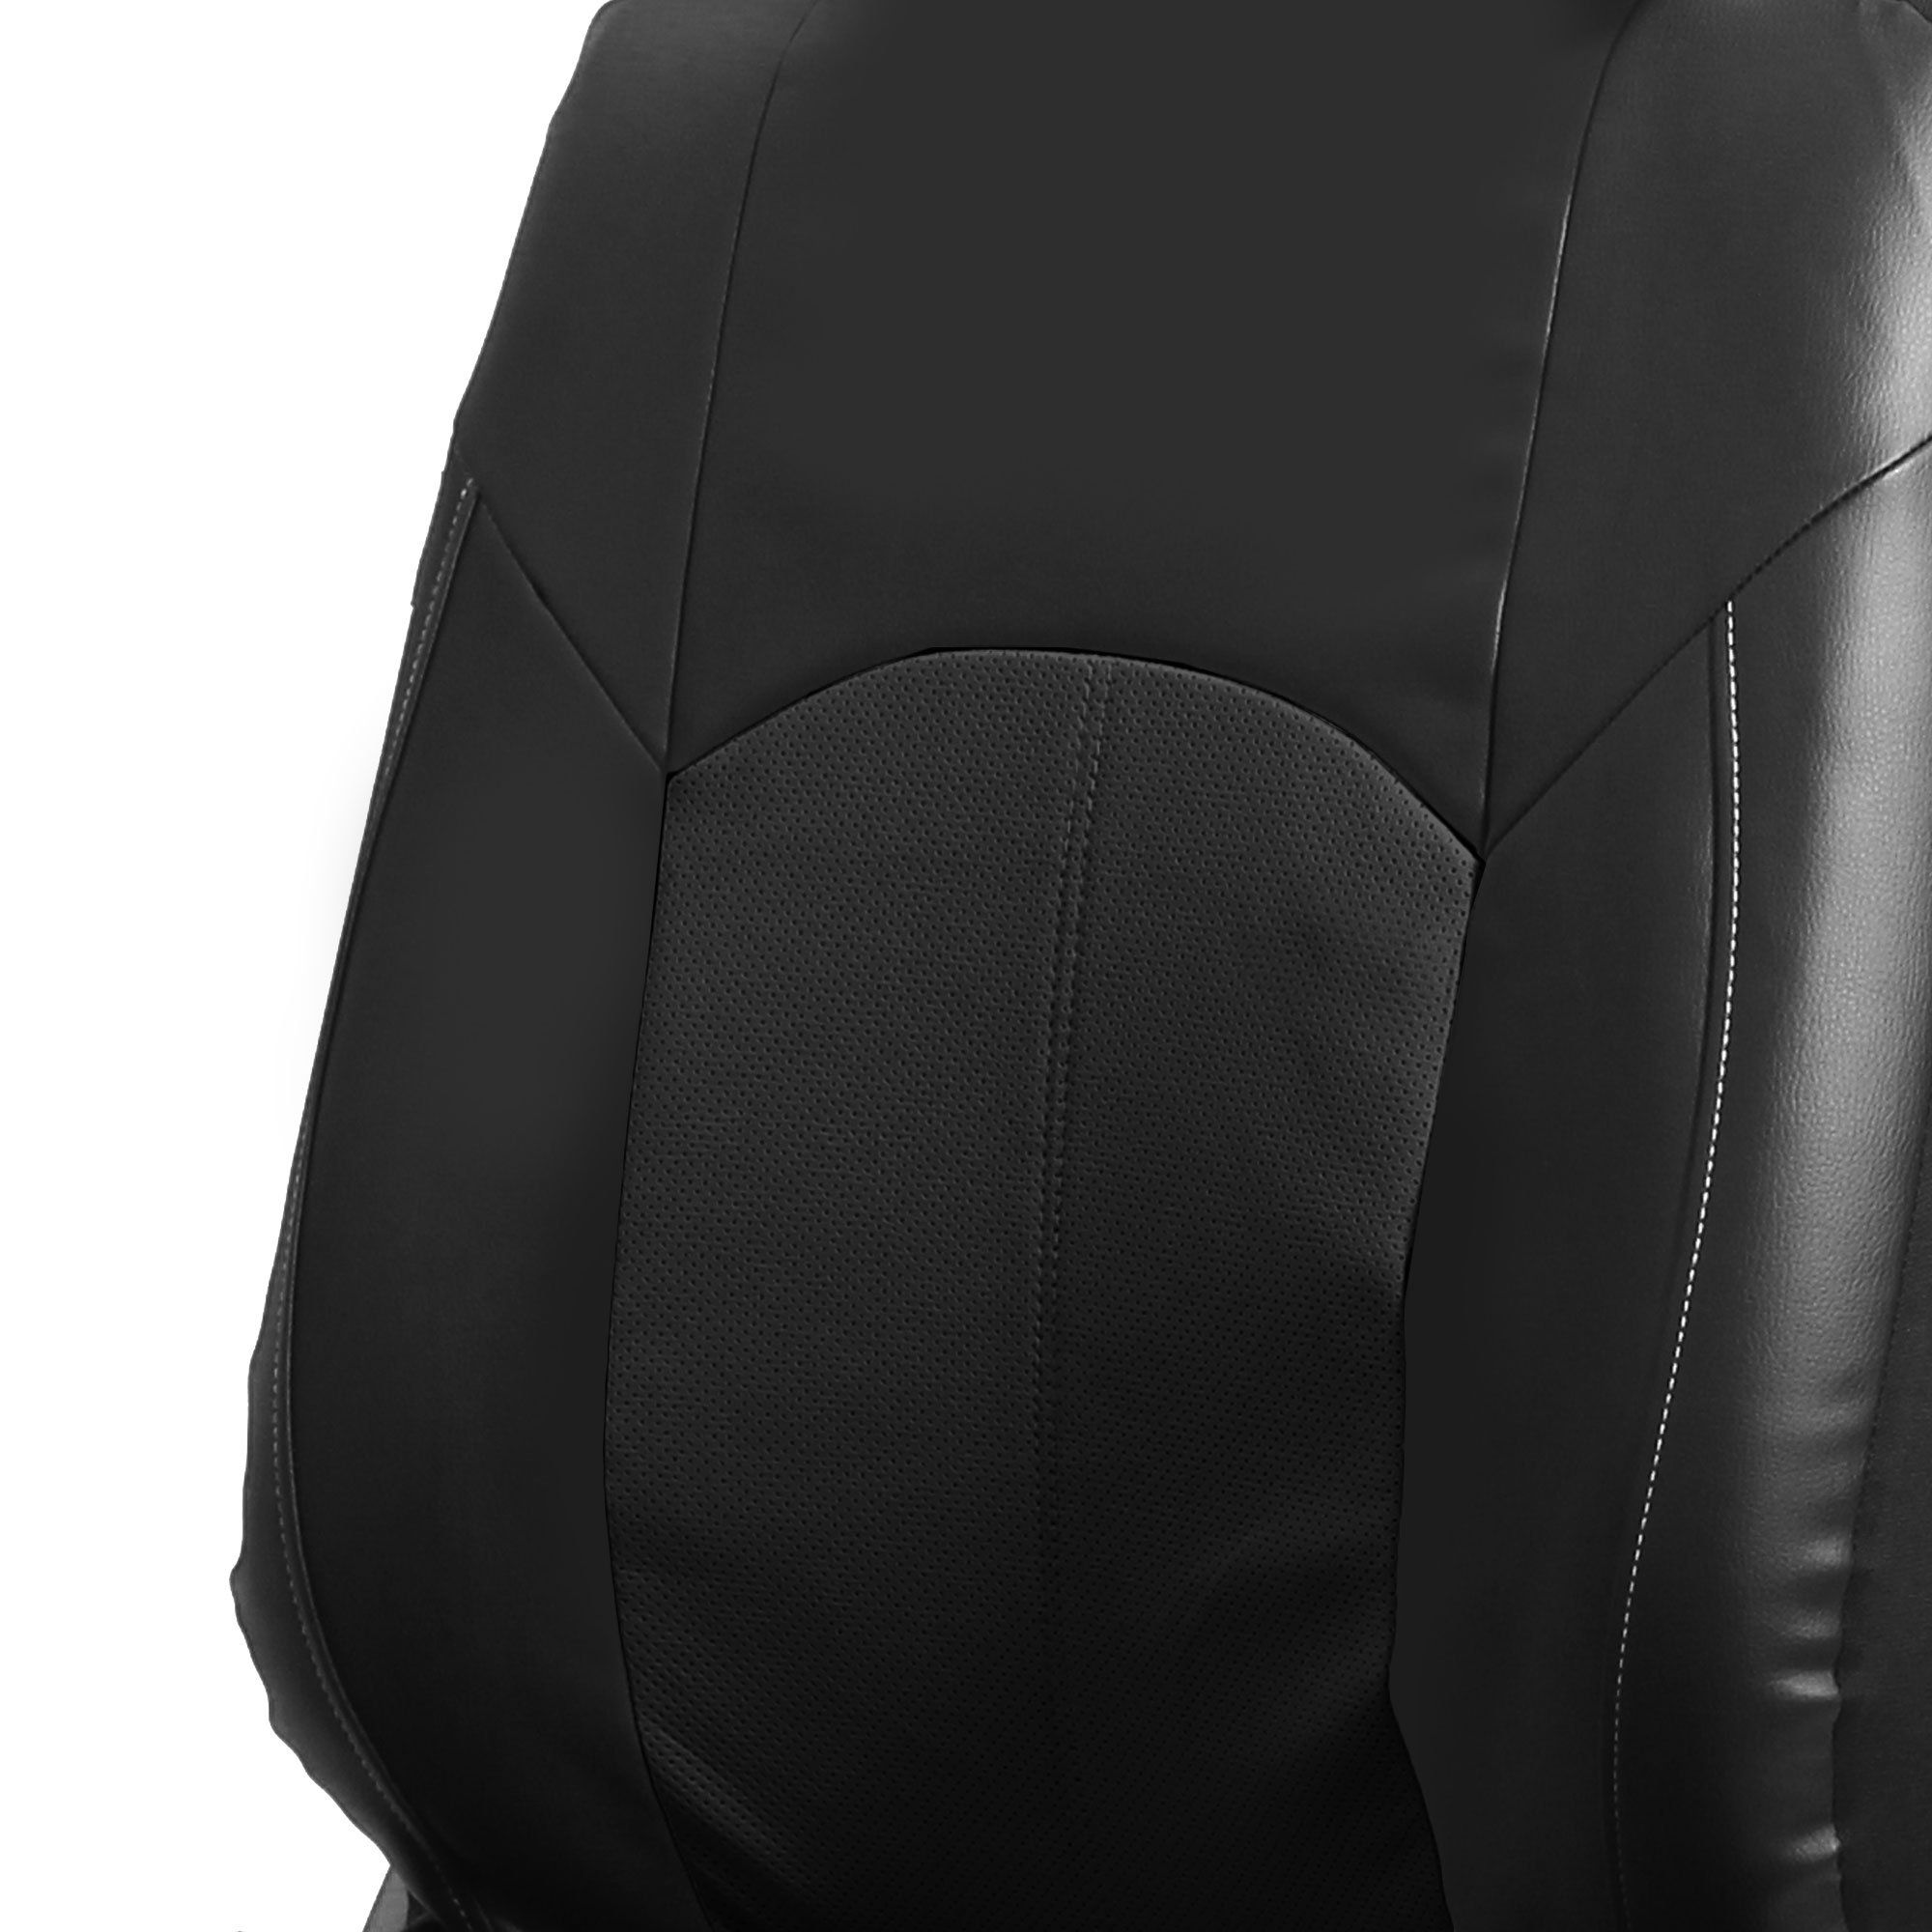 Fh Group Fhpu008115 Perforated Leatherette Full Set Car Seat Covers Airbag Caraccessoriesideas Leather Seat Covers Leather Seat Custom Seat Covers